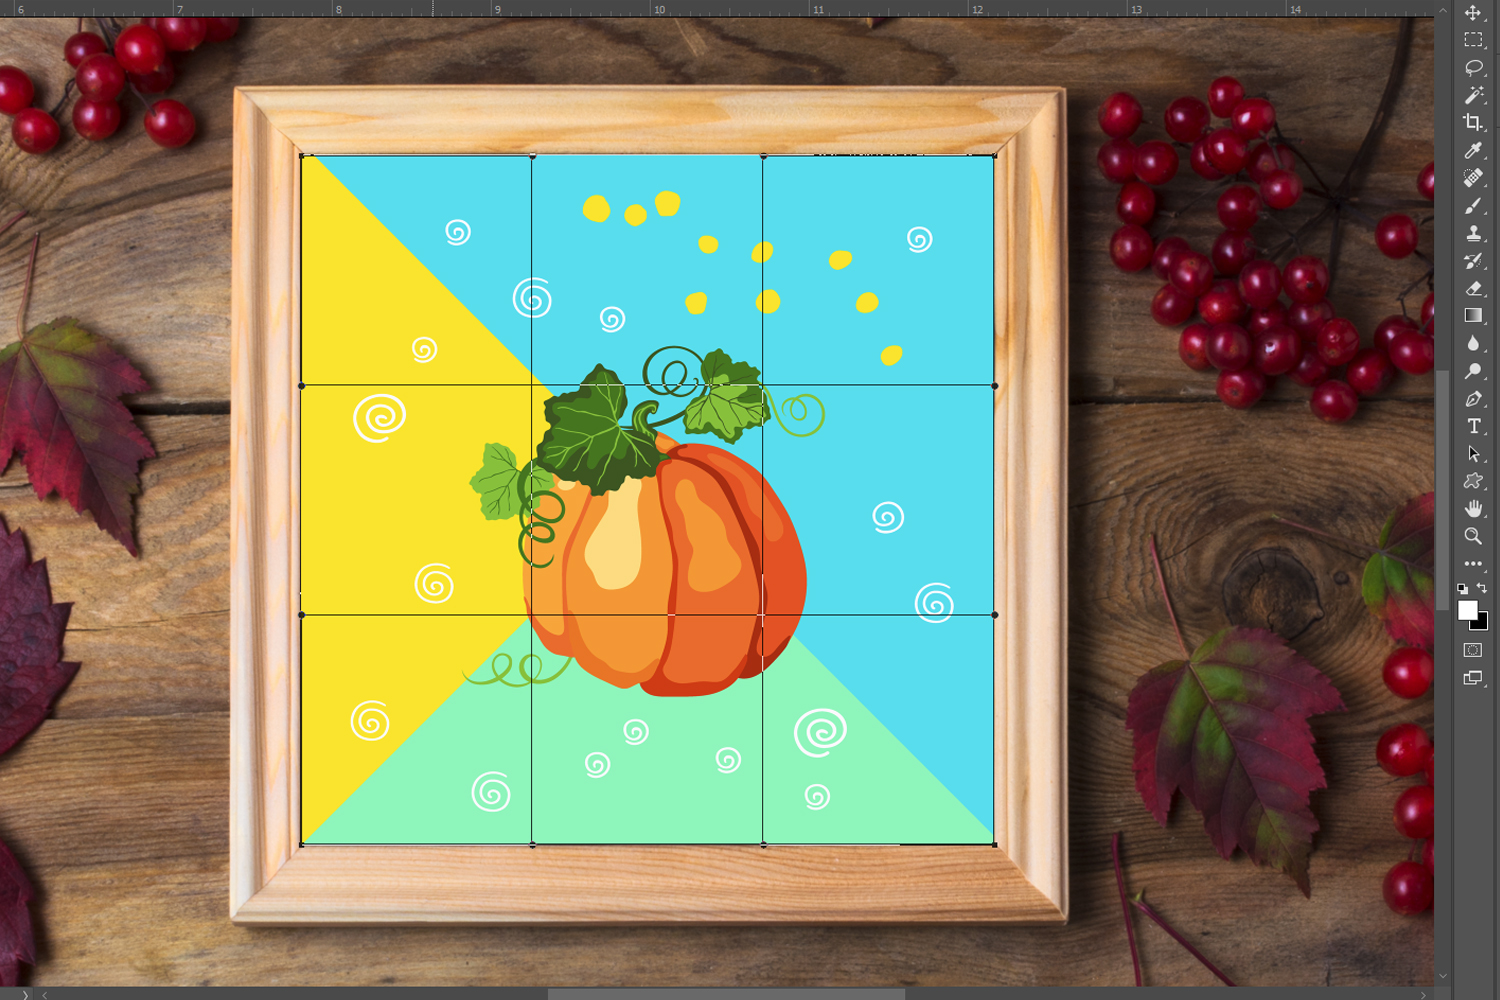 Rustic square frame mockup with viburnum berries example image 2